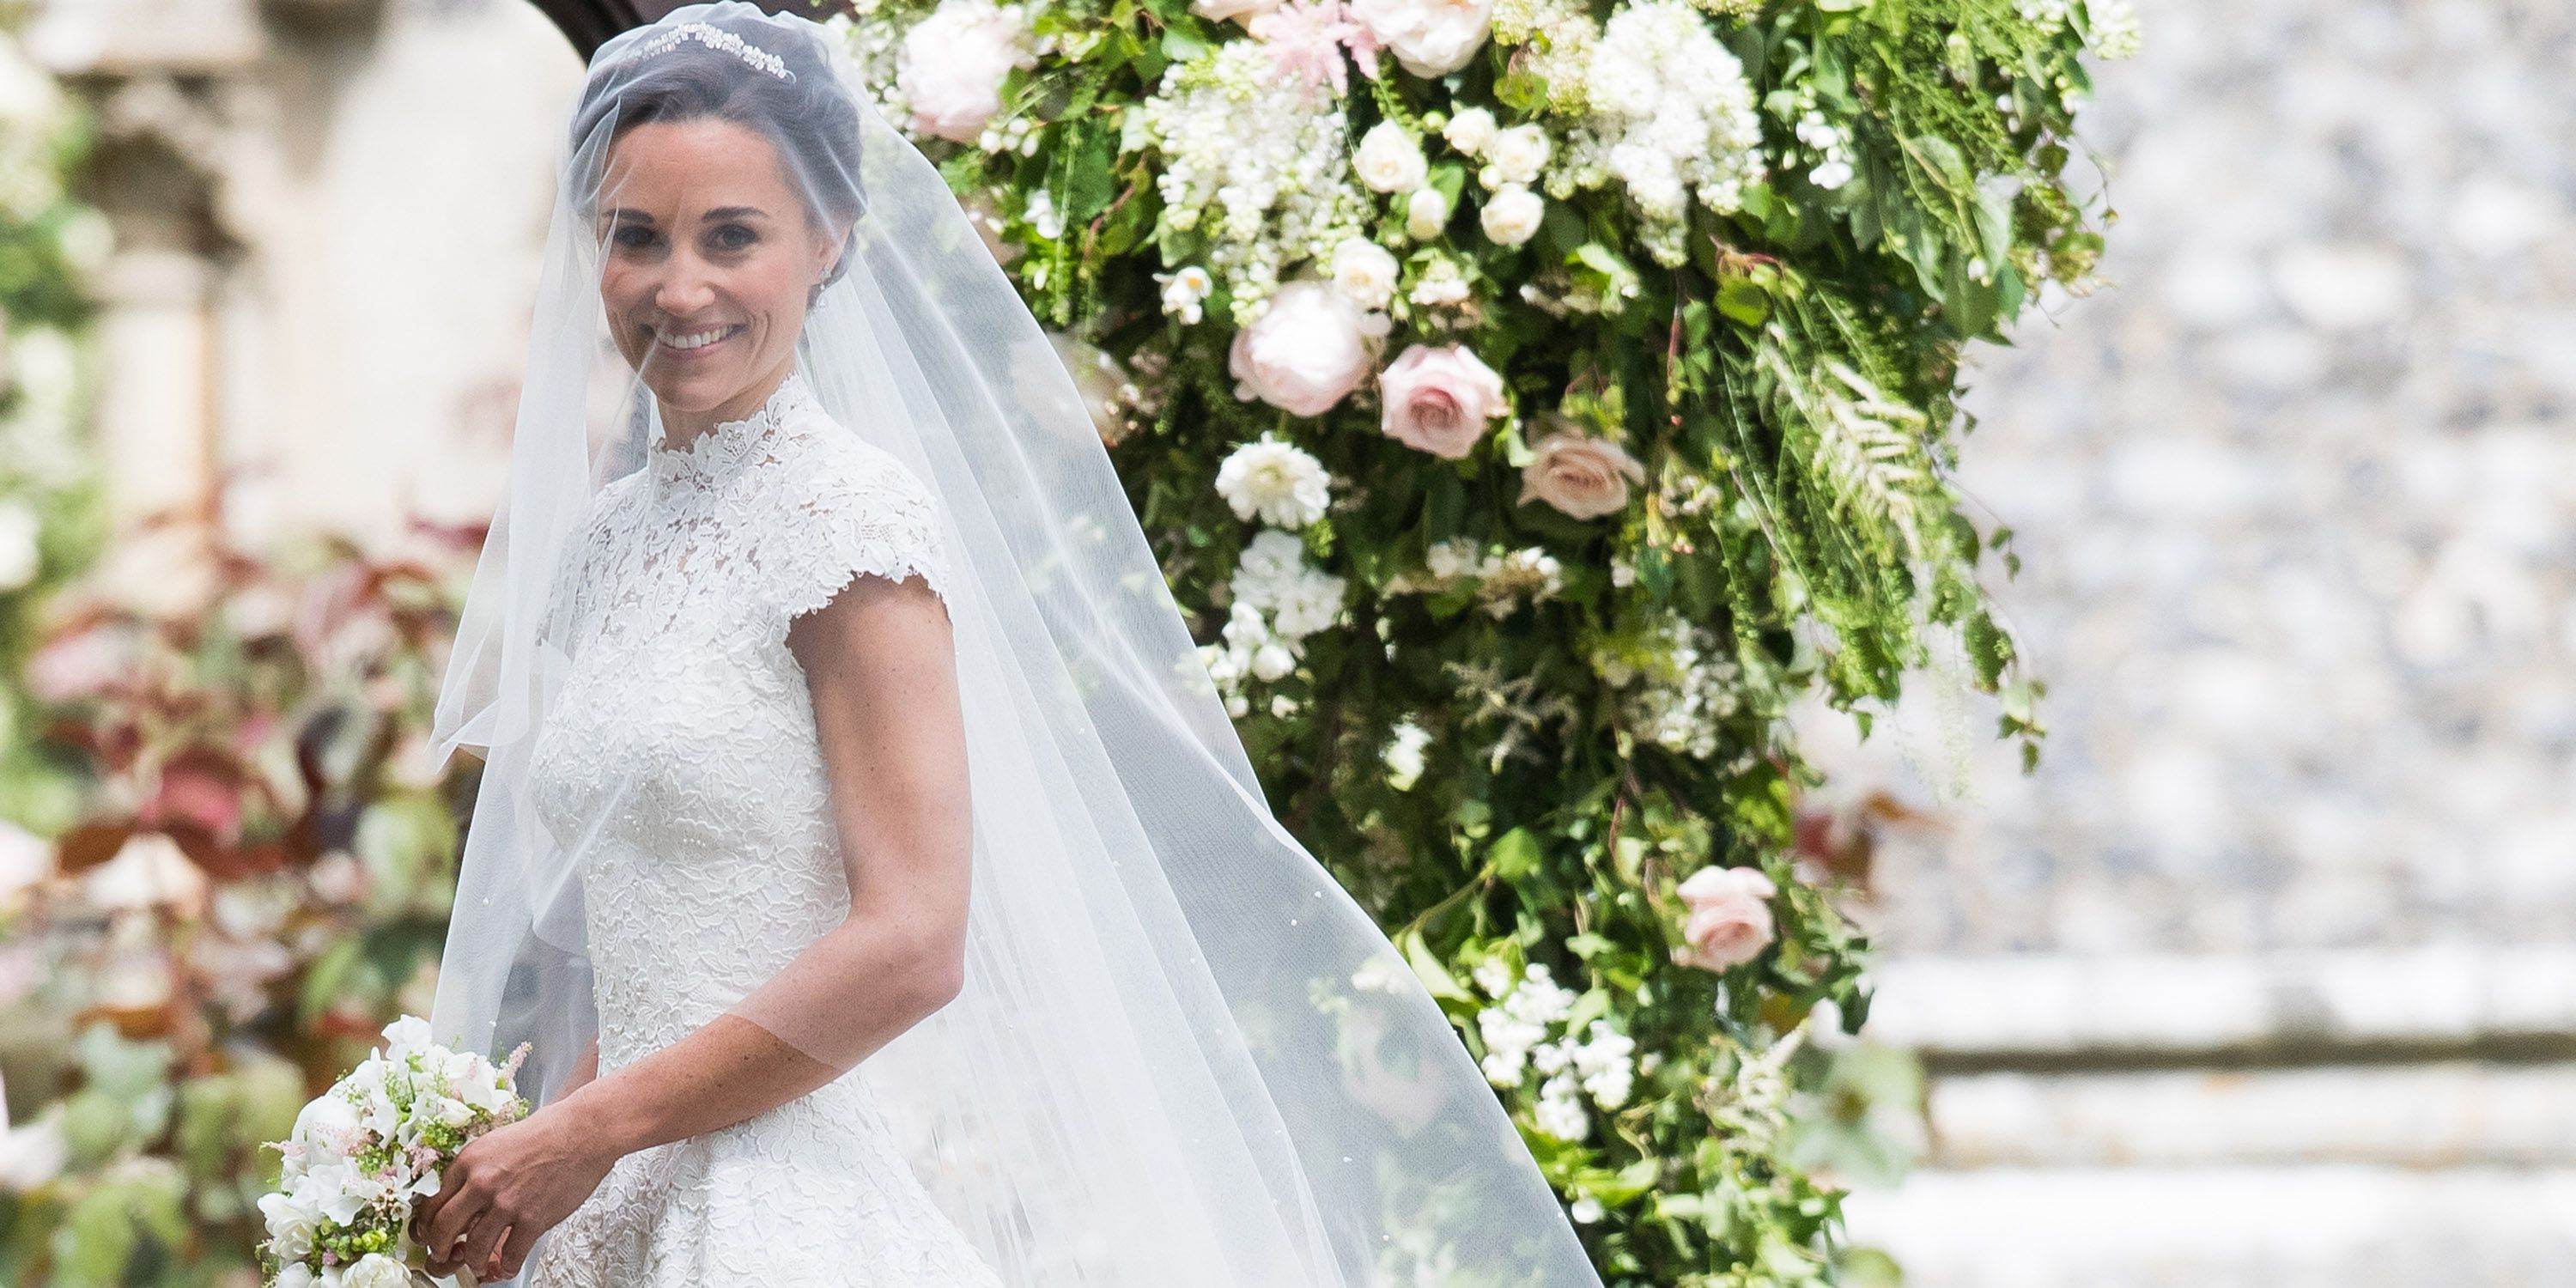 Pippa Middleton S Wedding Dress Giles Deacon Designs Pippa